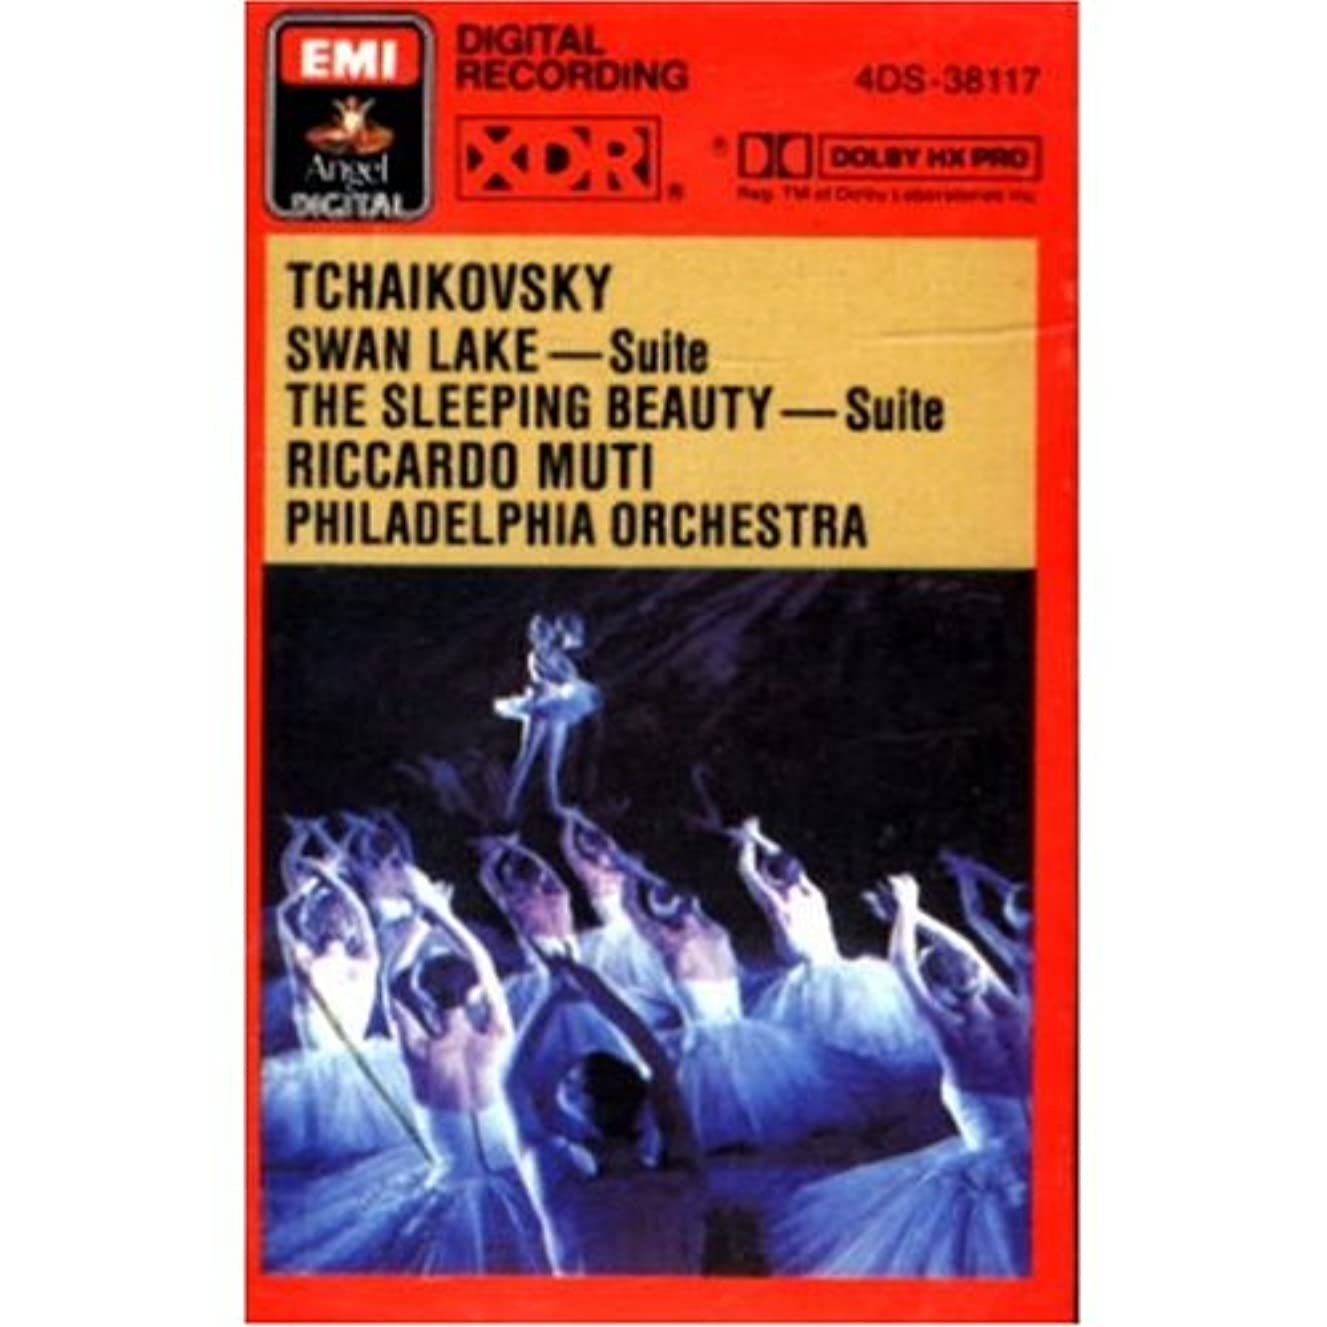 Tchaikovsky: Swan Lake & Sleeping Beauty Suites / Riccardo Muti Conducting The Philadelphia Orchestra [Audio Cassette]